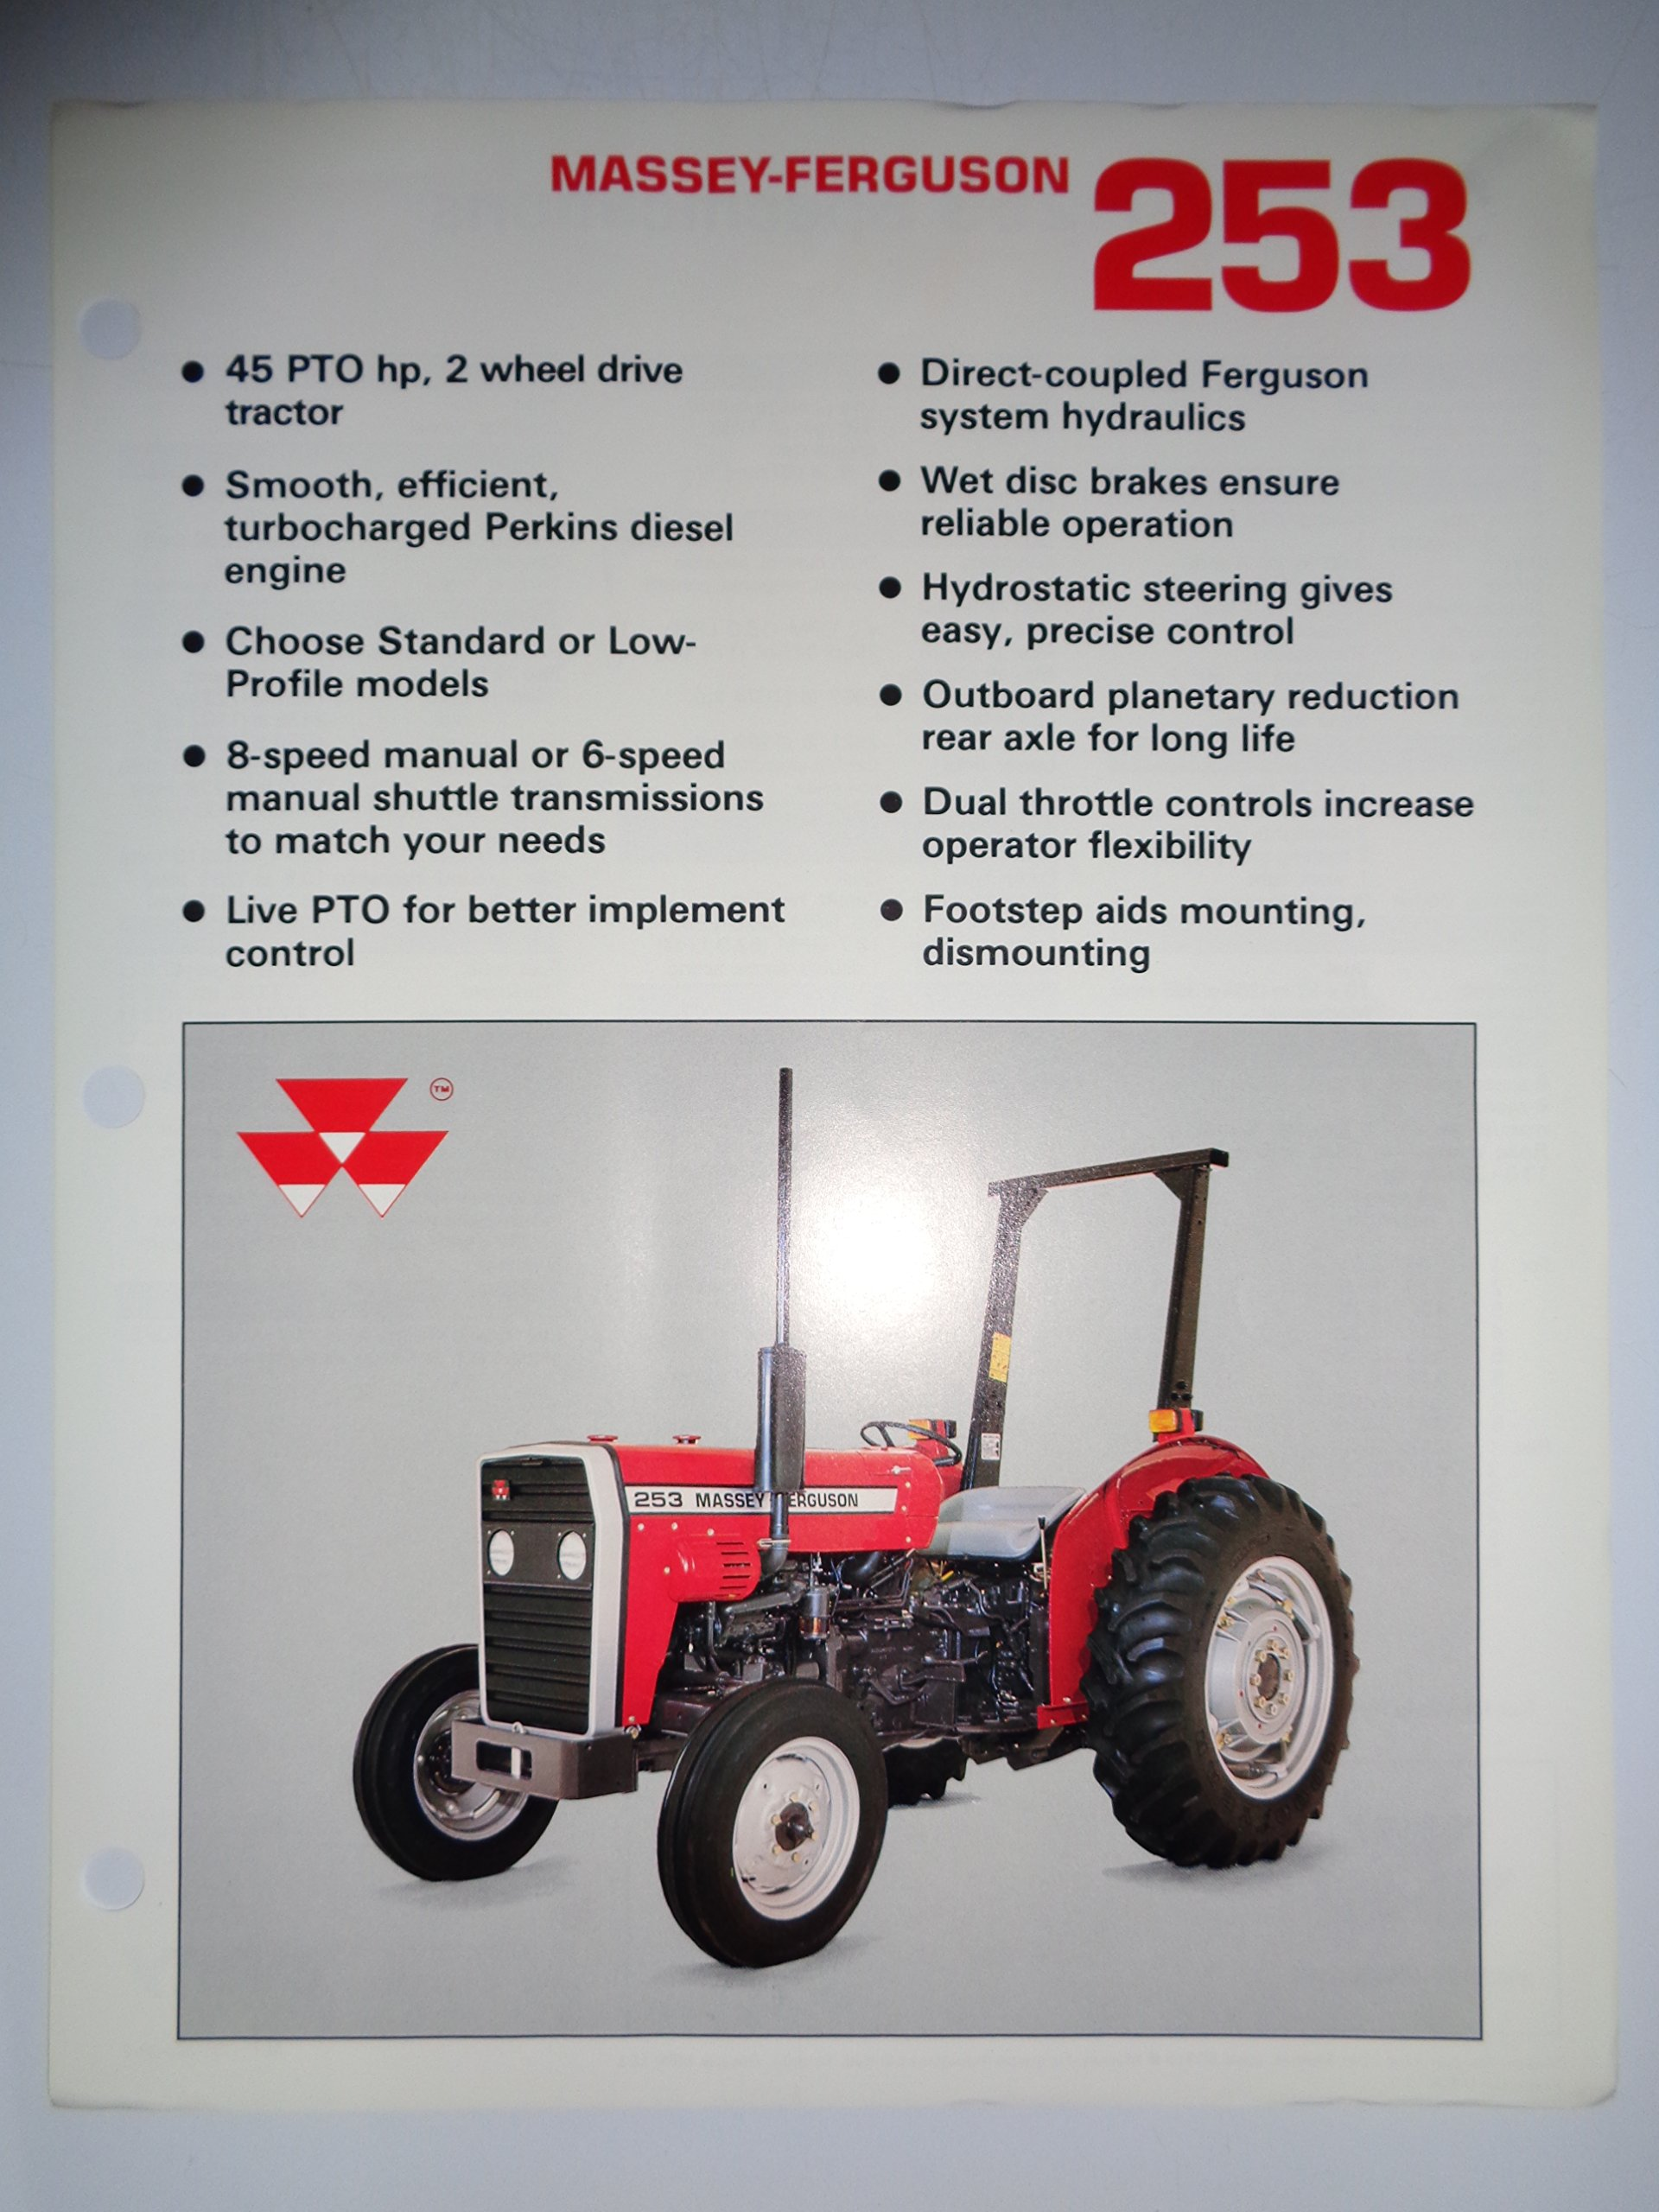 Massey Ferguson MF 253 Tractor Sales Spec Sheet Brochure 12/88: MF